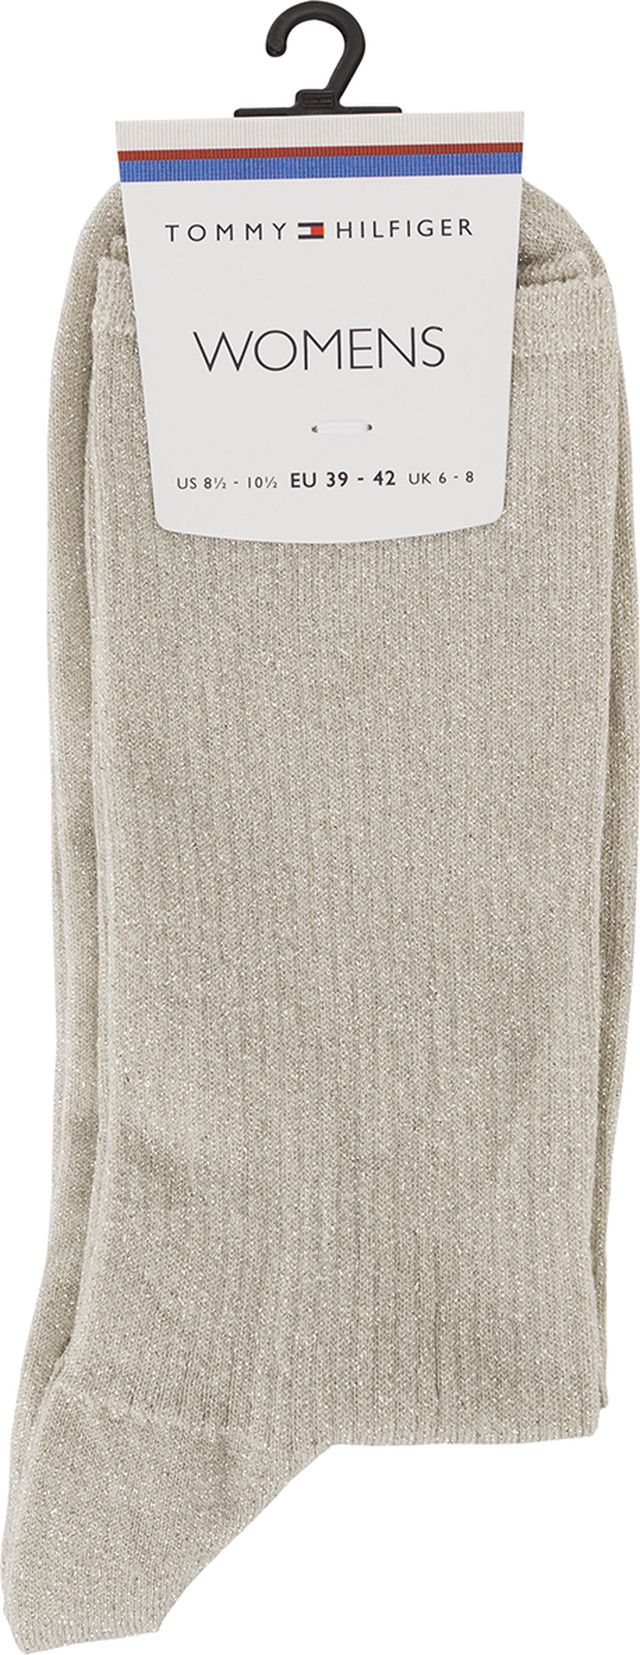 Tommy Hilfiger WOMEN HOLIDAY RUNWAY SOCK 1500 473001001-500